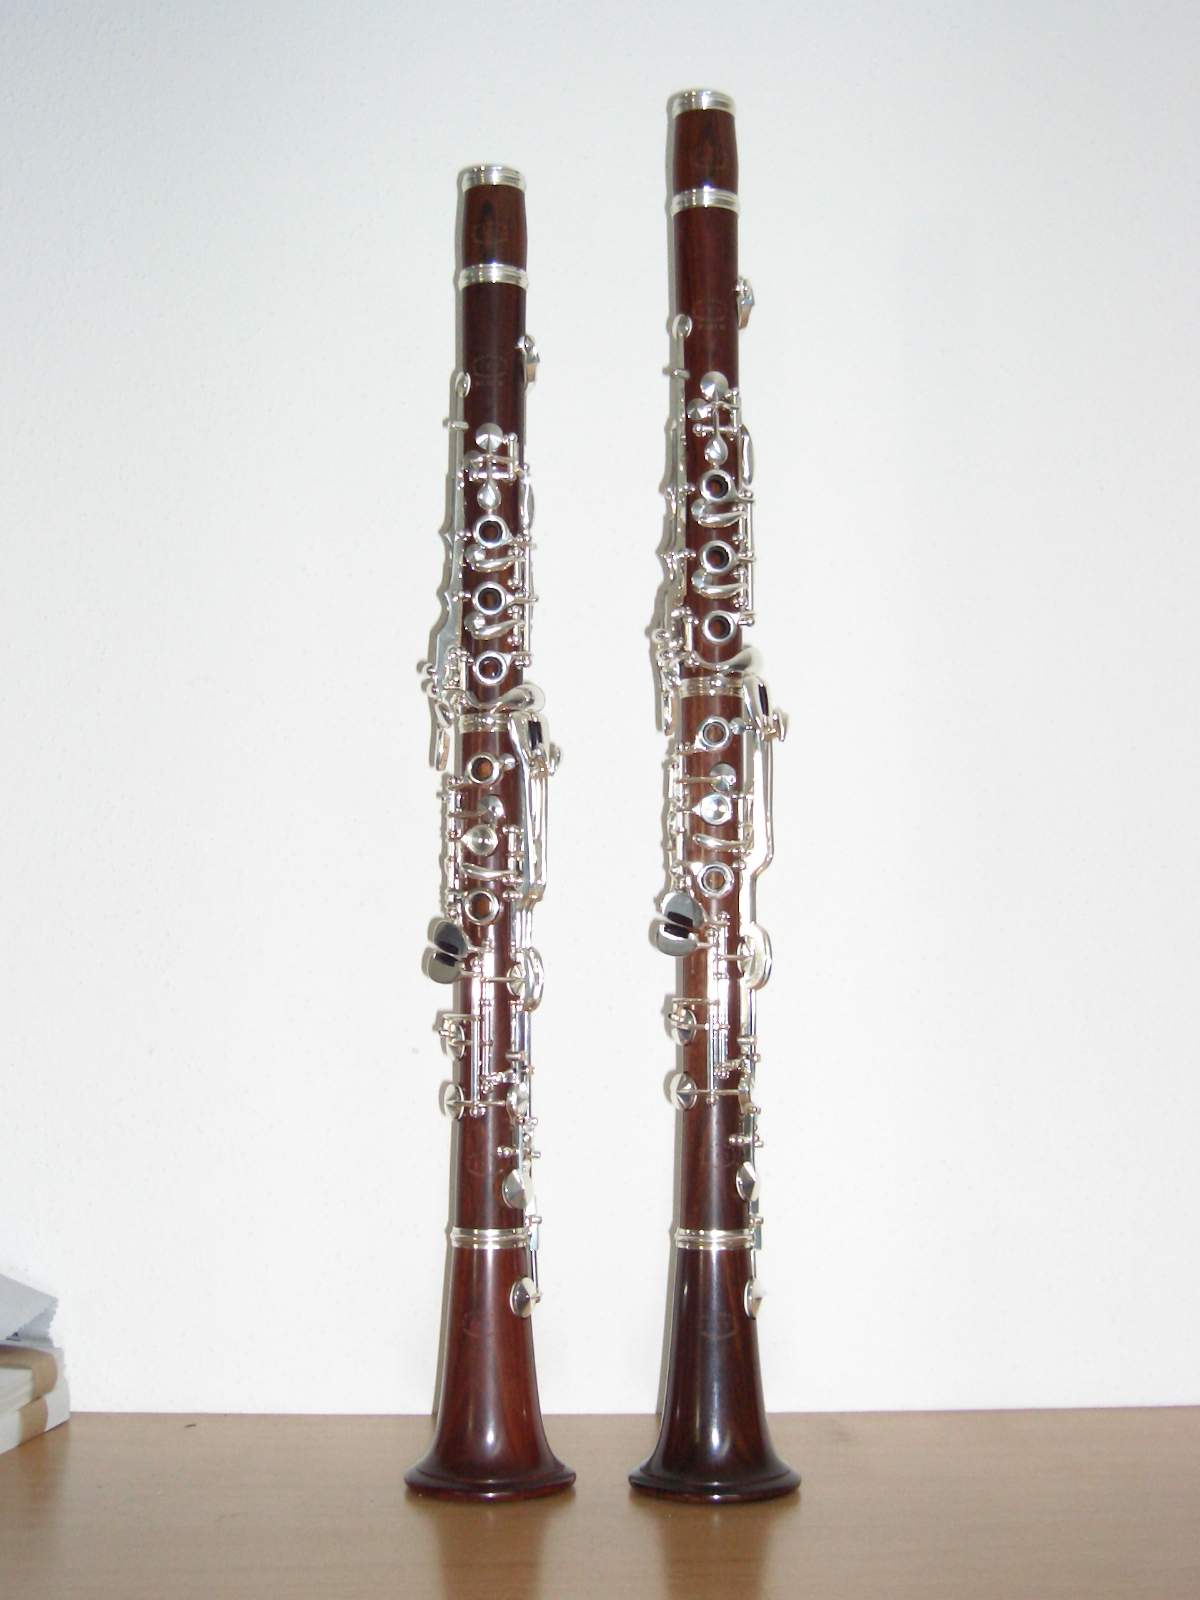 Clarinet Mopane W. Dietz, treated with linseed oil